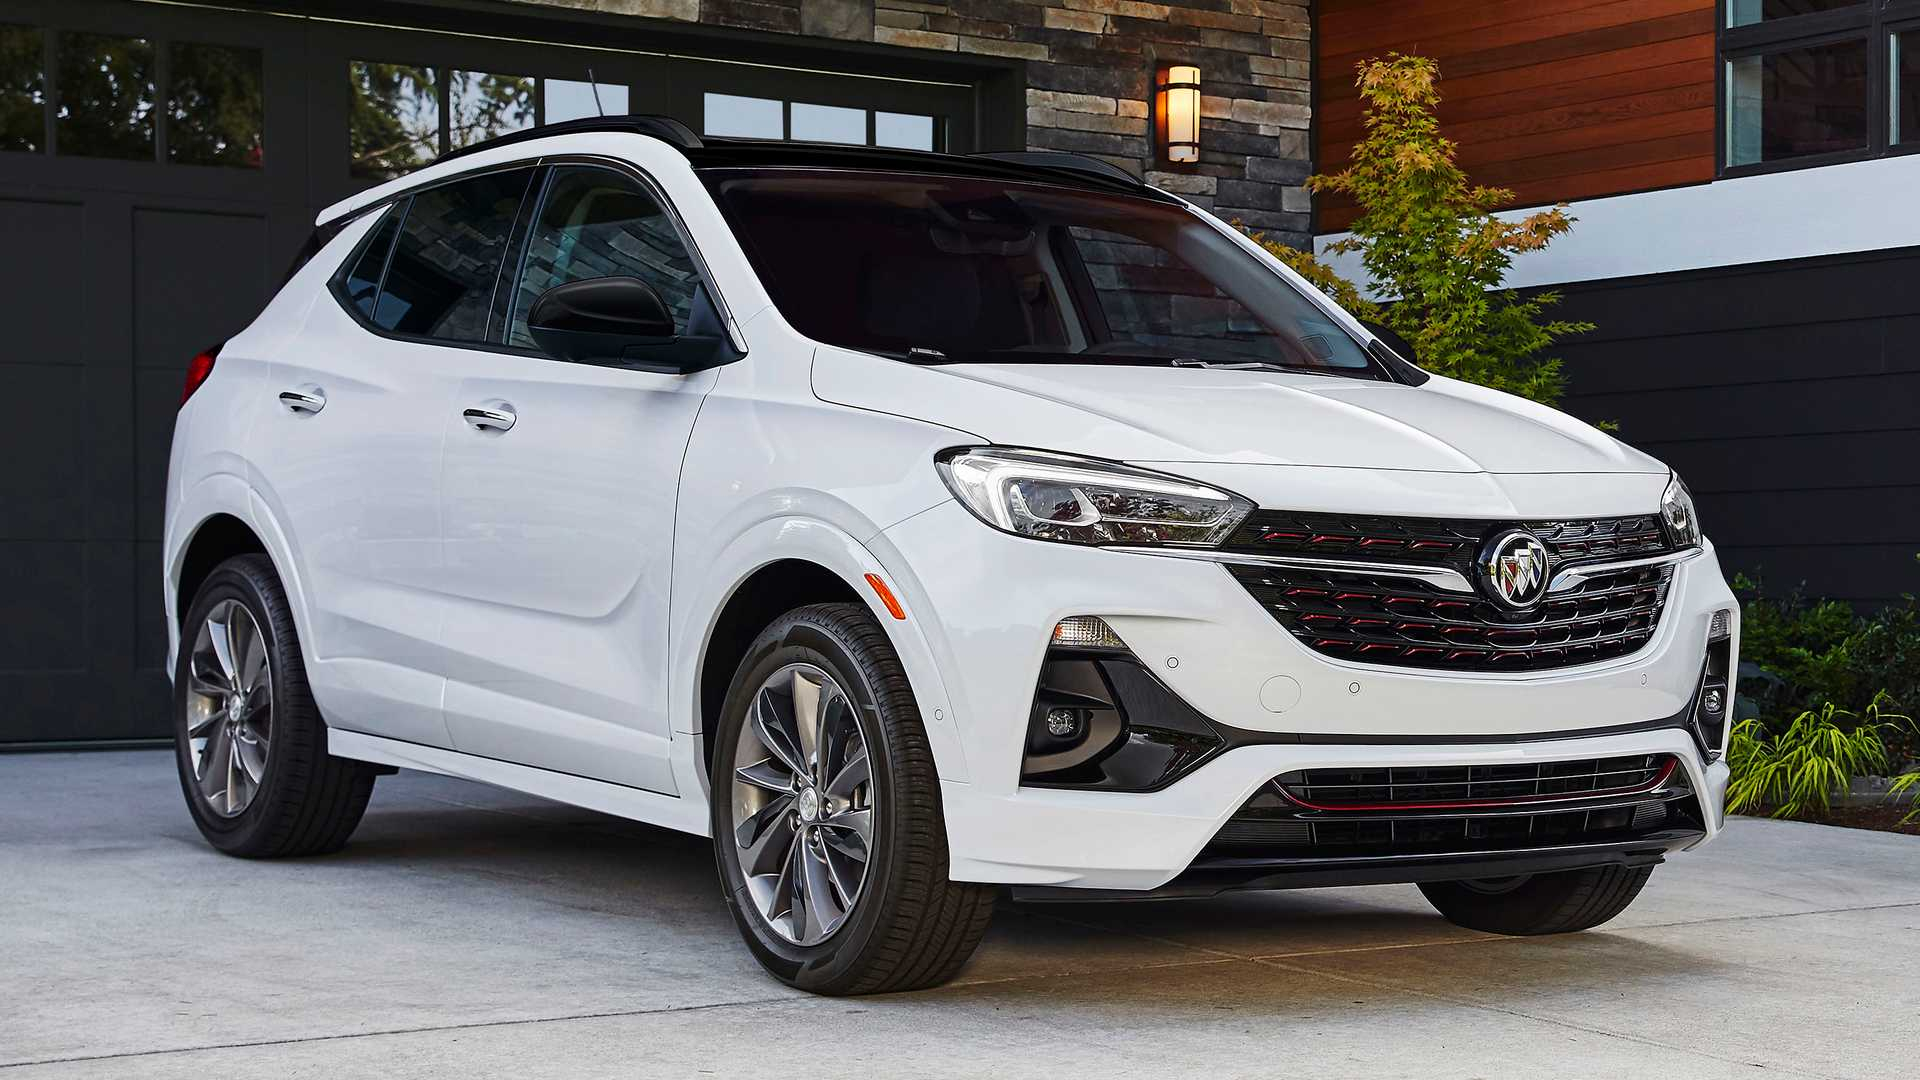 2020 Buick Encore Gx Makes Up To 155 Hp, Gets Sport Touring Pack New 2021 Buick Encore Gx Used, Weight, 0-60